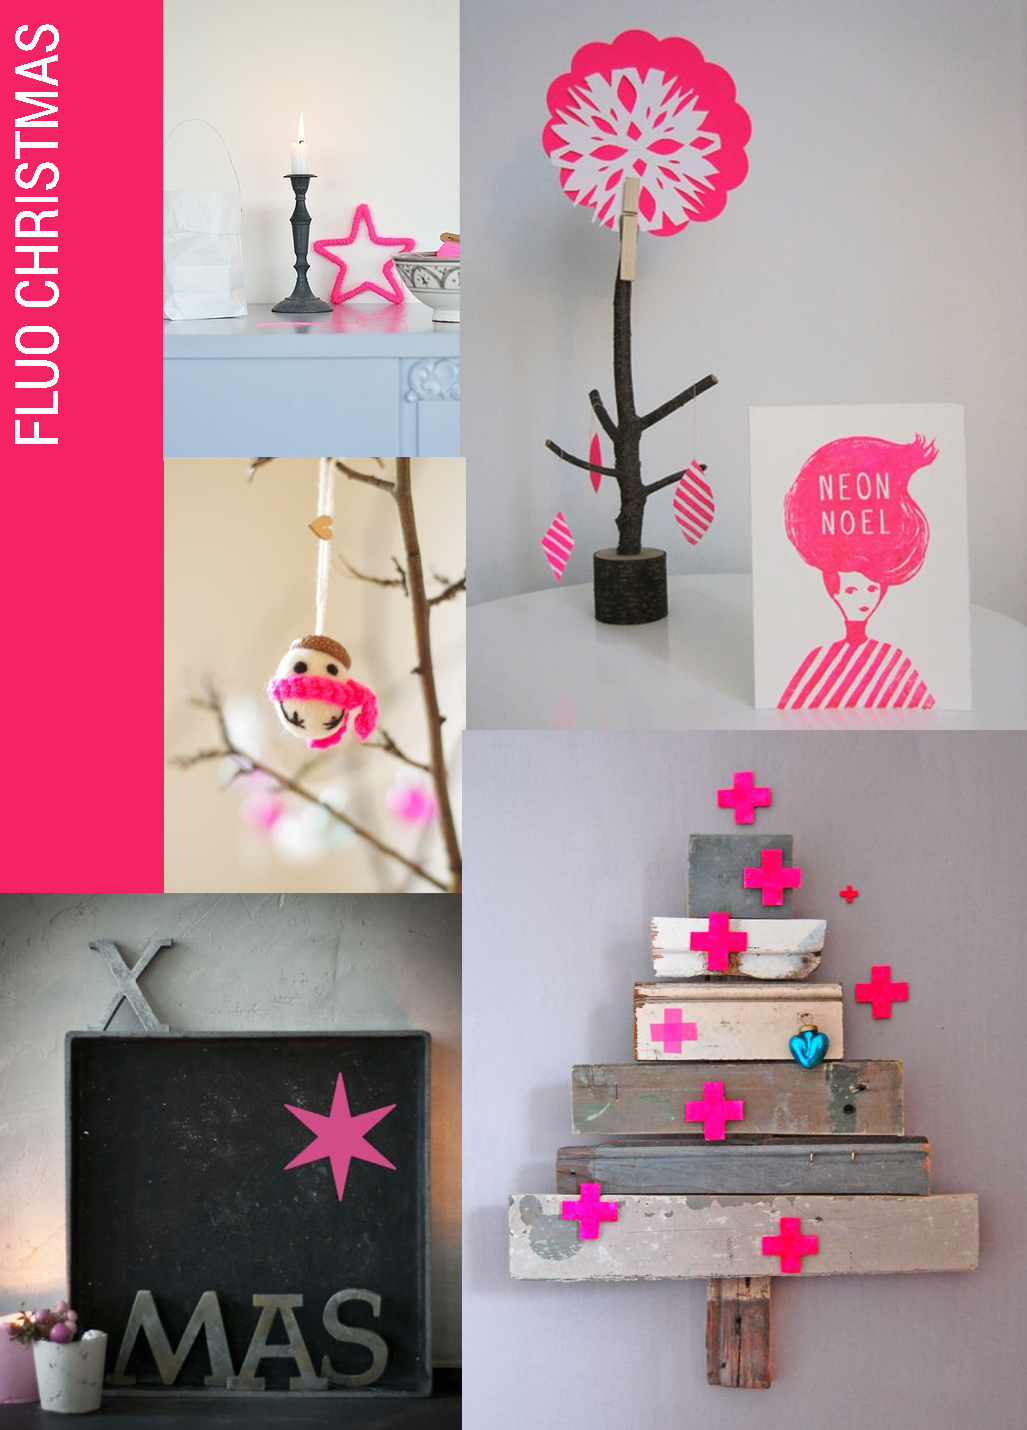 fluo neon christmas decorating trend, christmas home decor fluo, Christmas decor trends, fluo christmas